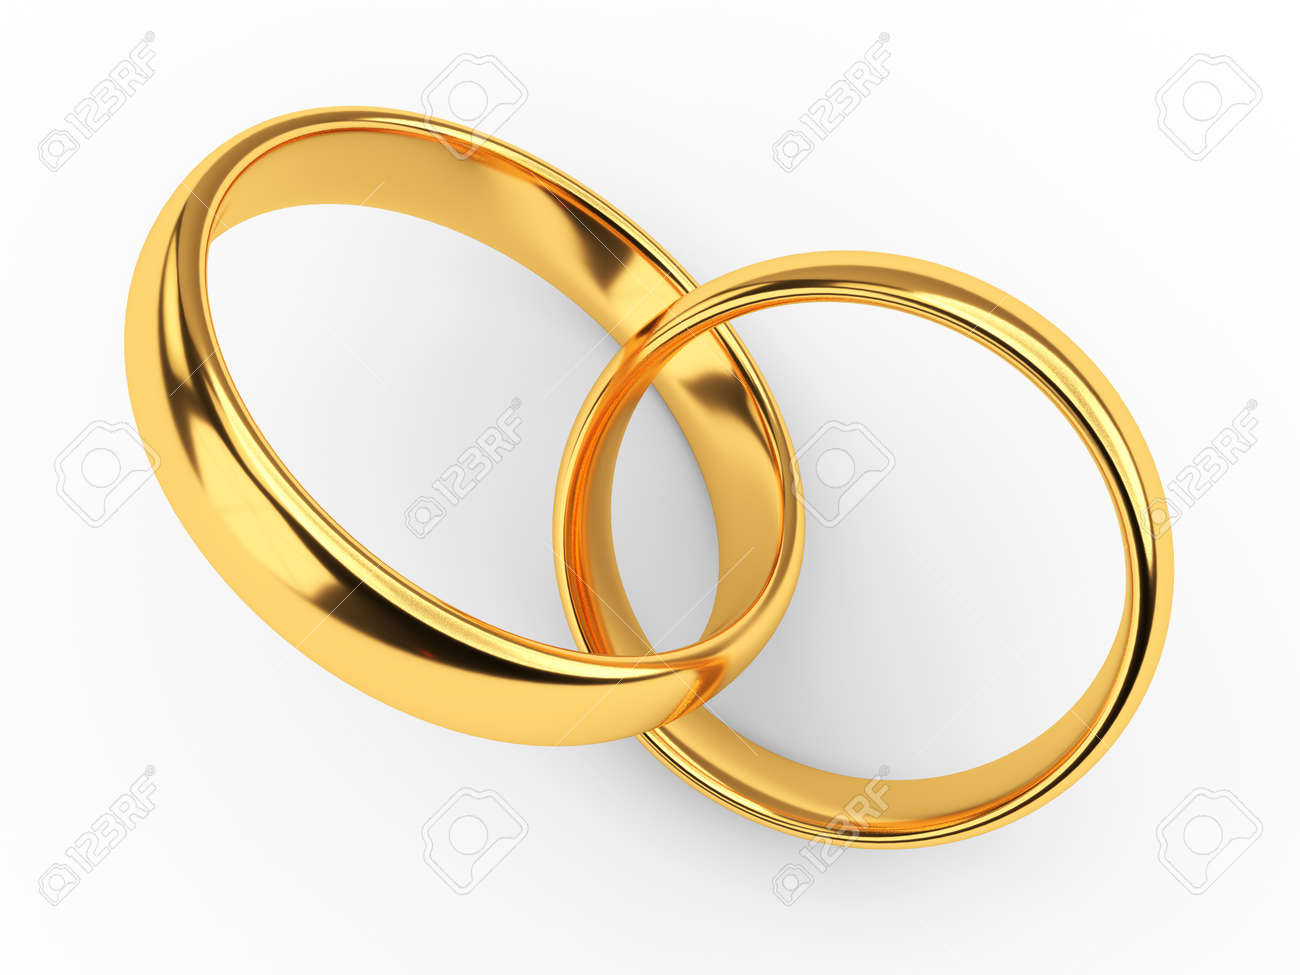 illustration of two connected gold wedding rings stock photo